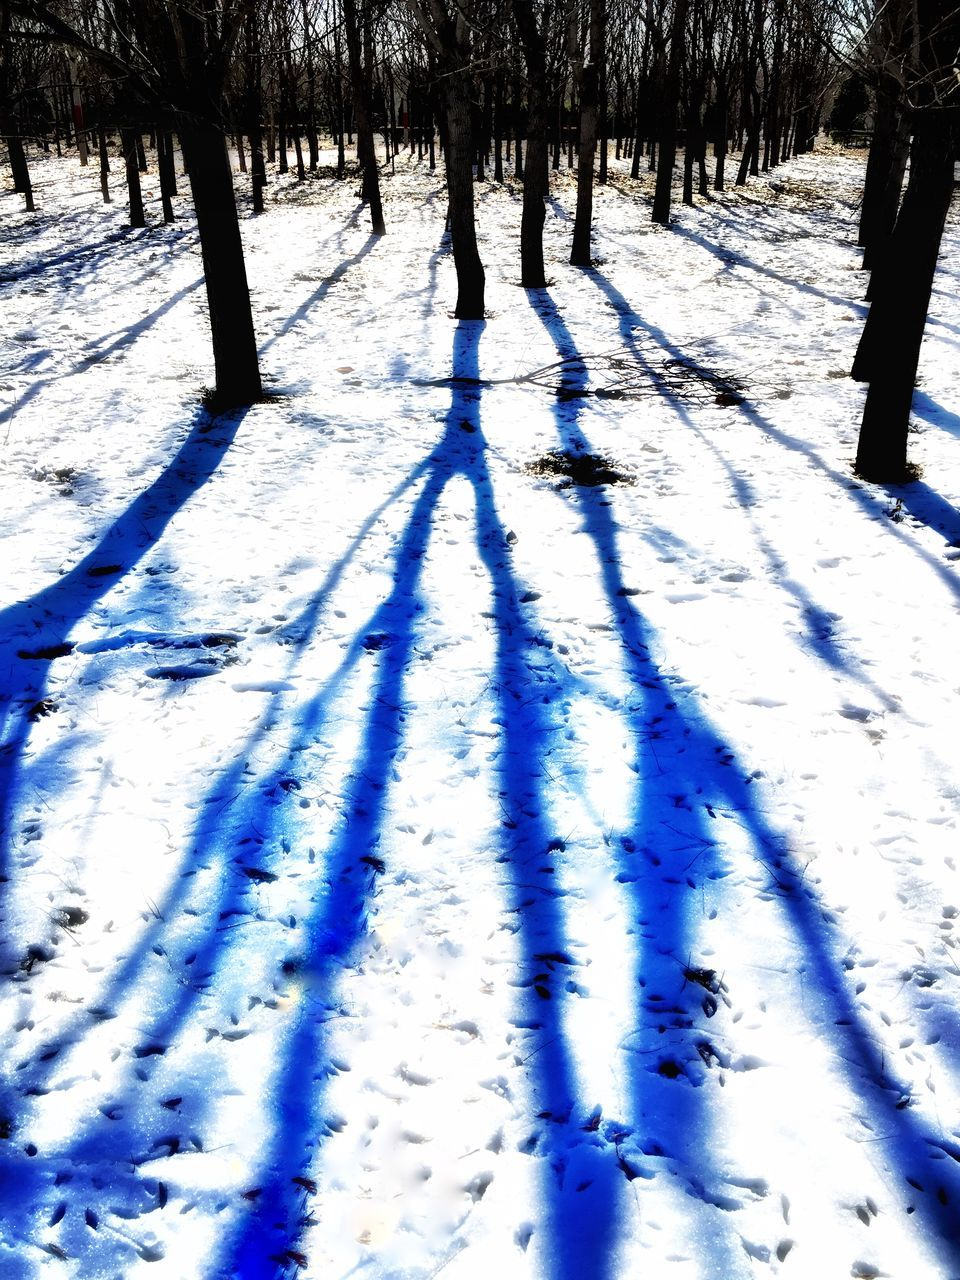 winter, cold temperature, snow, shadow, sunlight, tree, weather, nature, frozen, day, outdoors, beauty in nature, tranquility, blue, real people, scenics, landscape, warm clothing